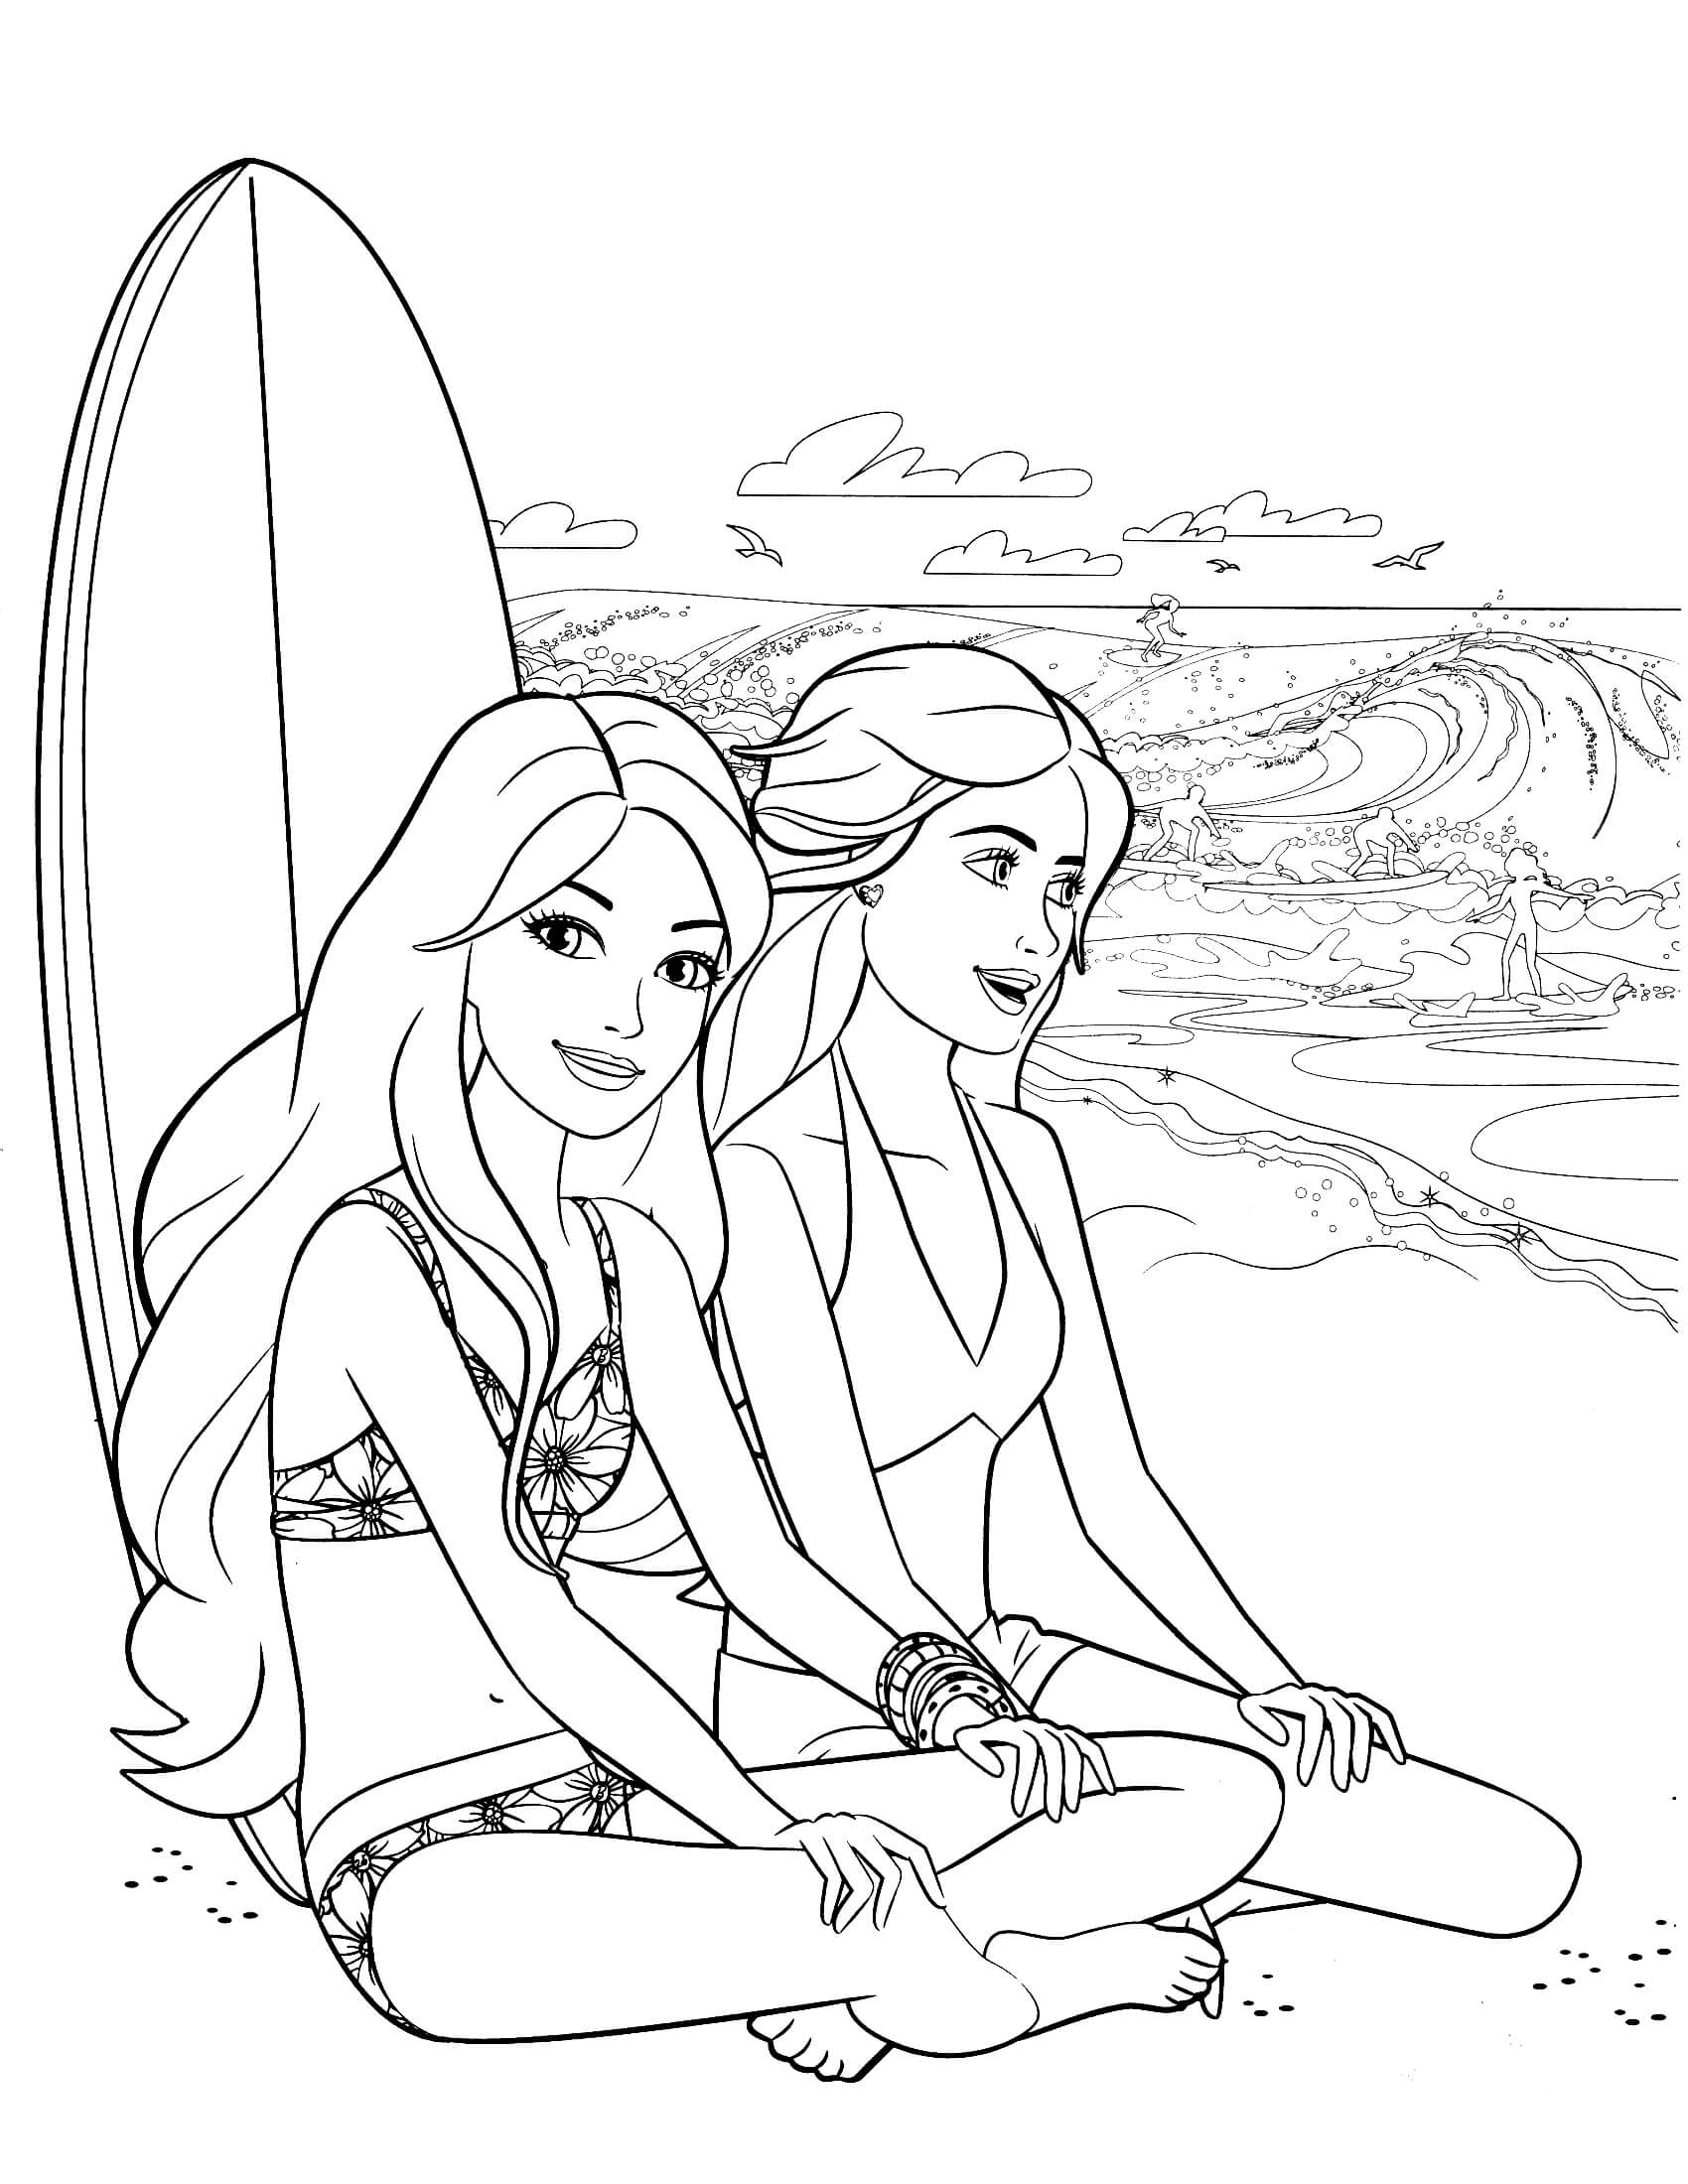 free barbie coloring pages free coloring pages barbie coloring pages barbie free pages coloring